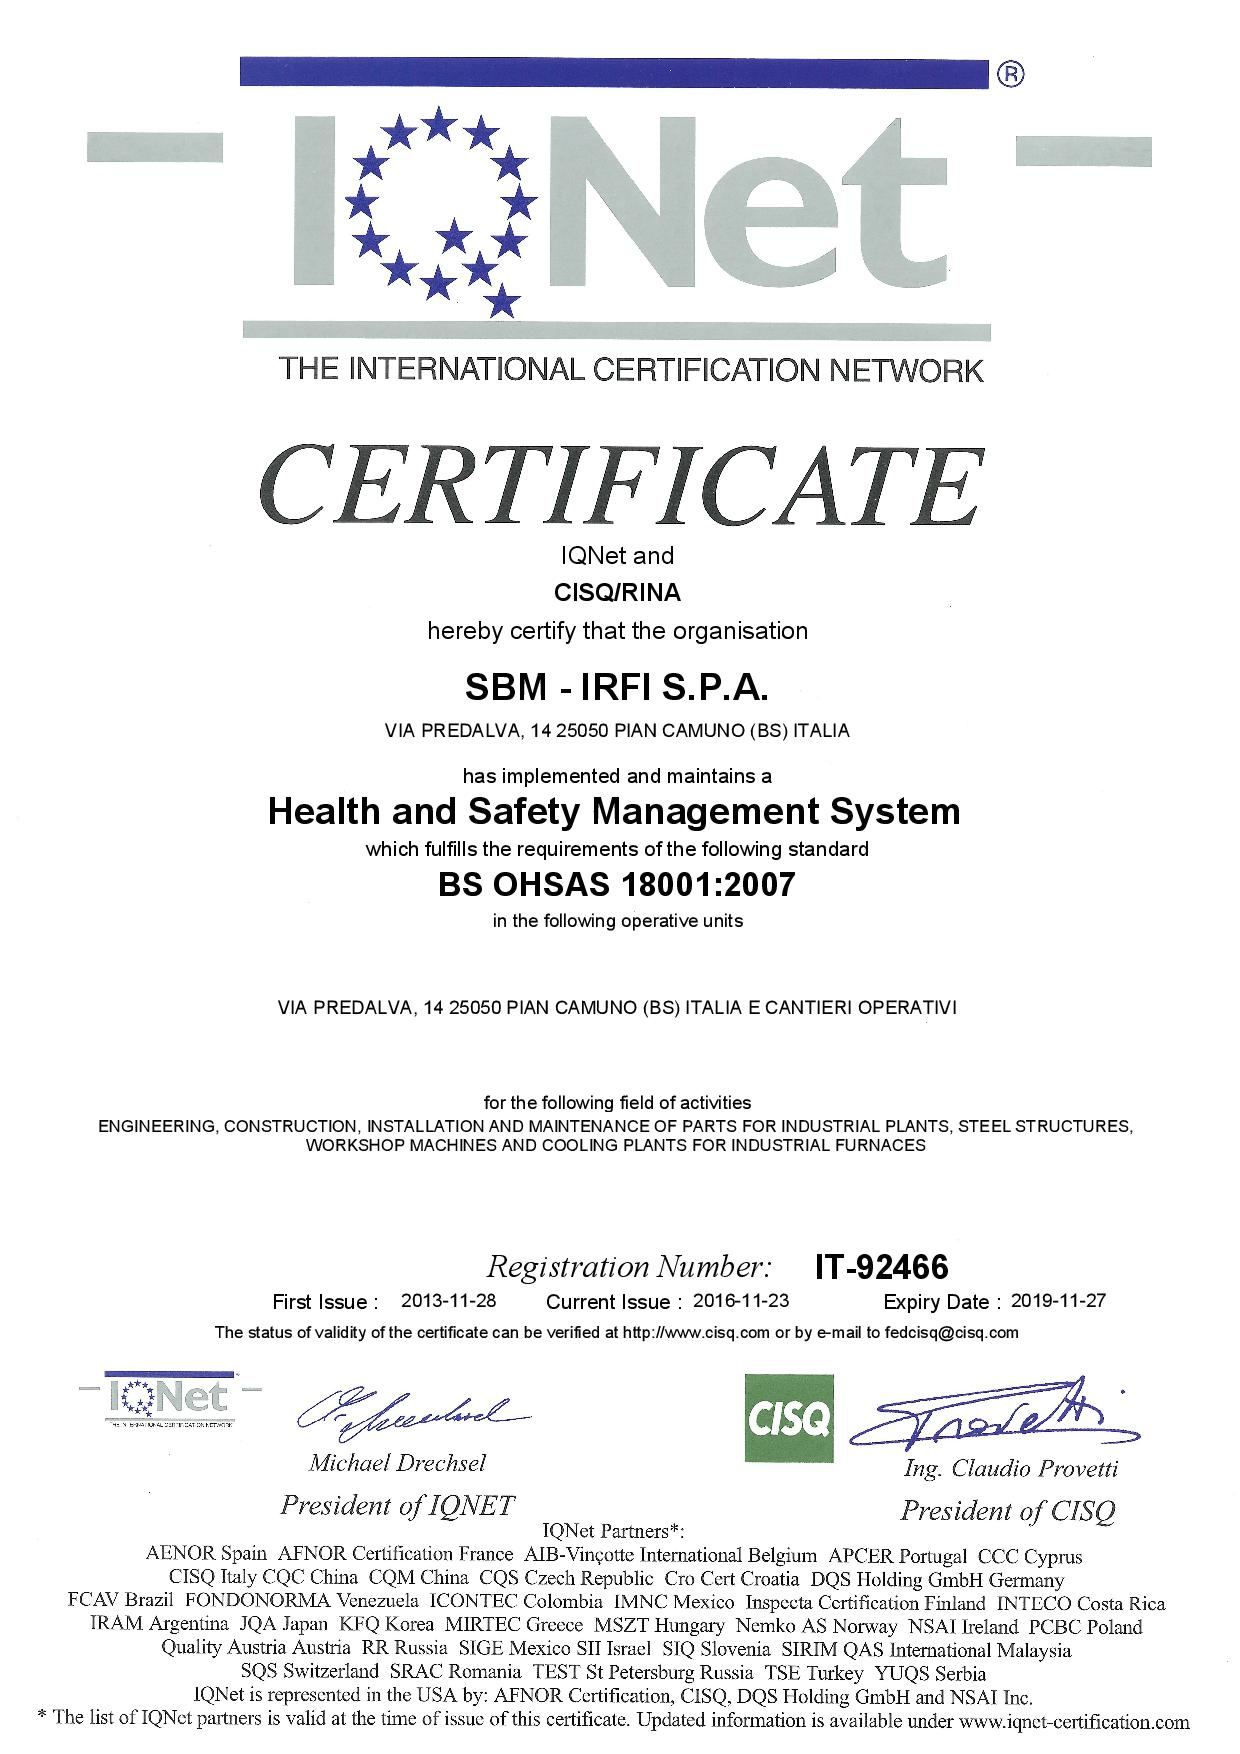 Certifications pian camuno brescia sbm irfi spa view all 1betcityfo Image collections